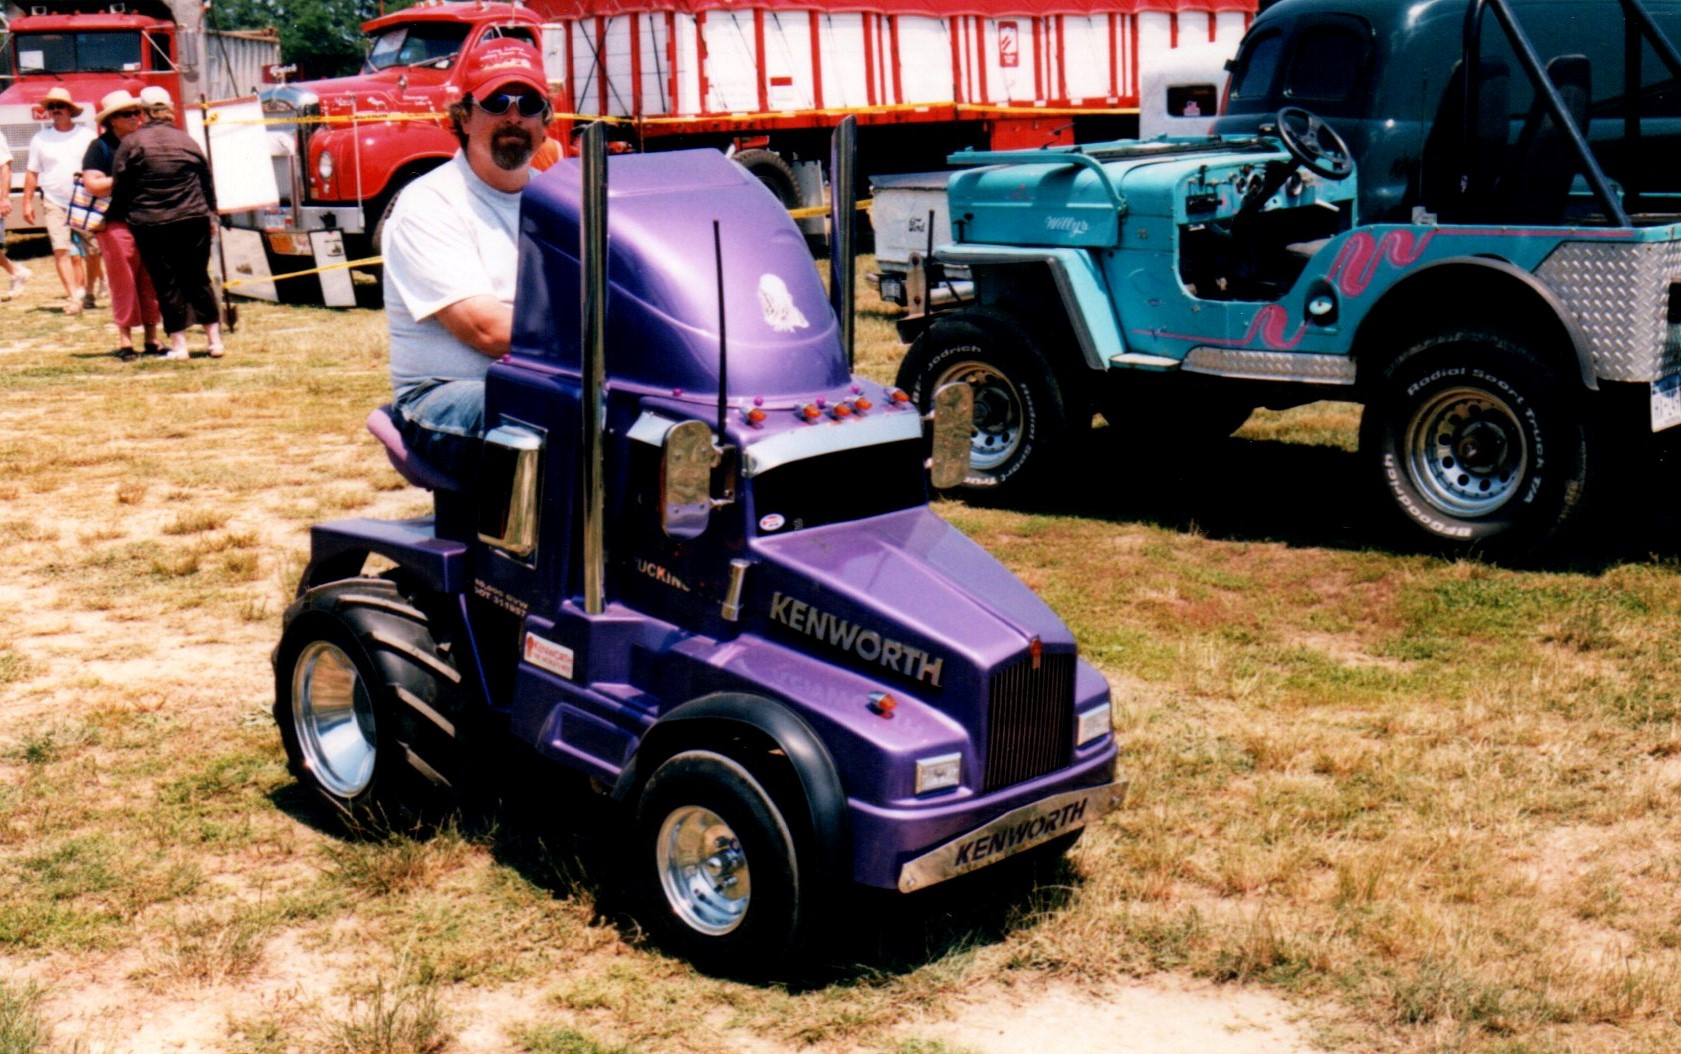 Trucks of all sizes were at the show